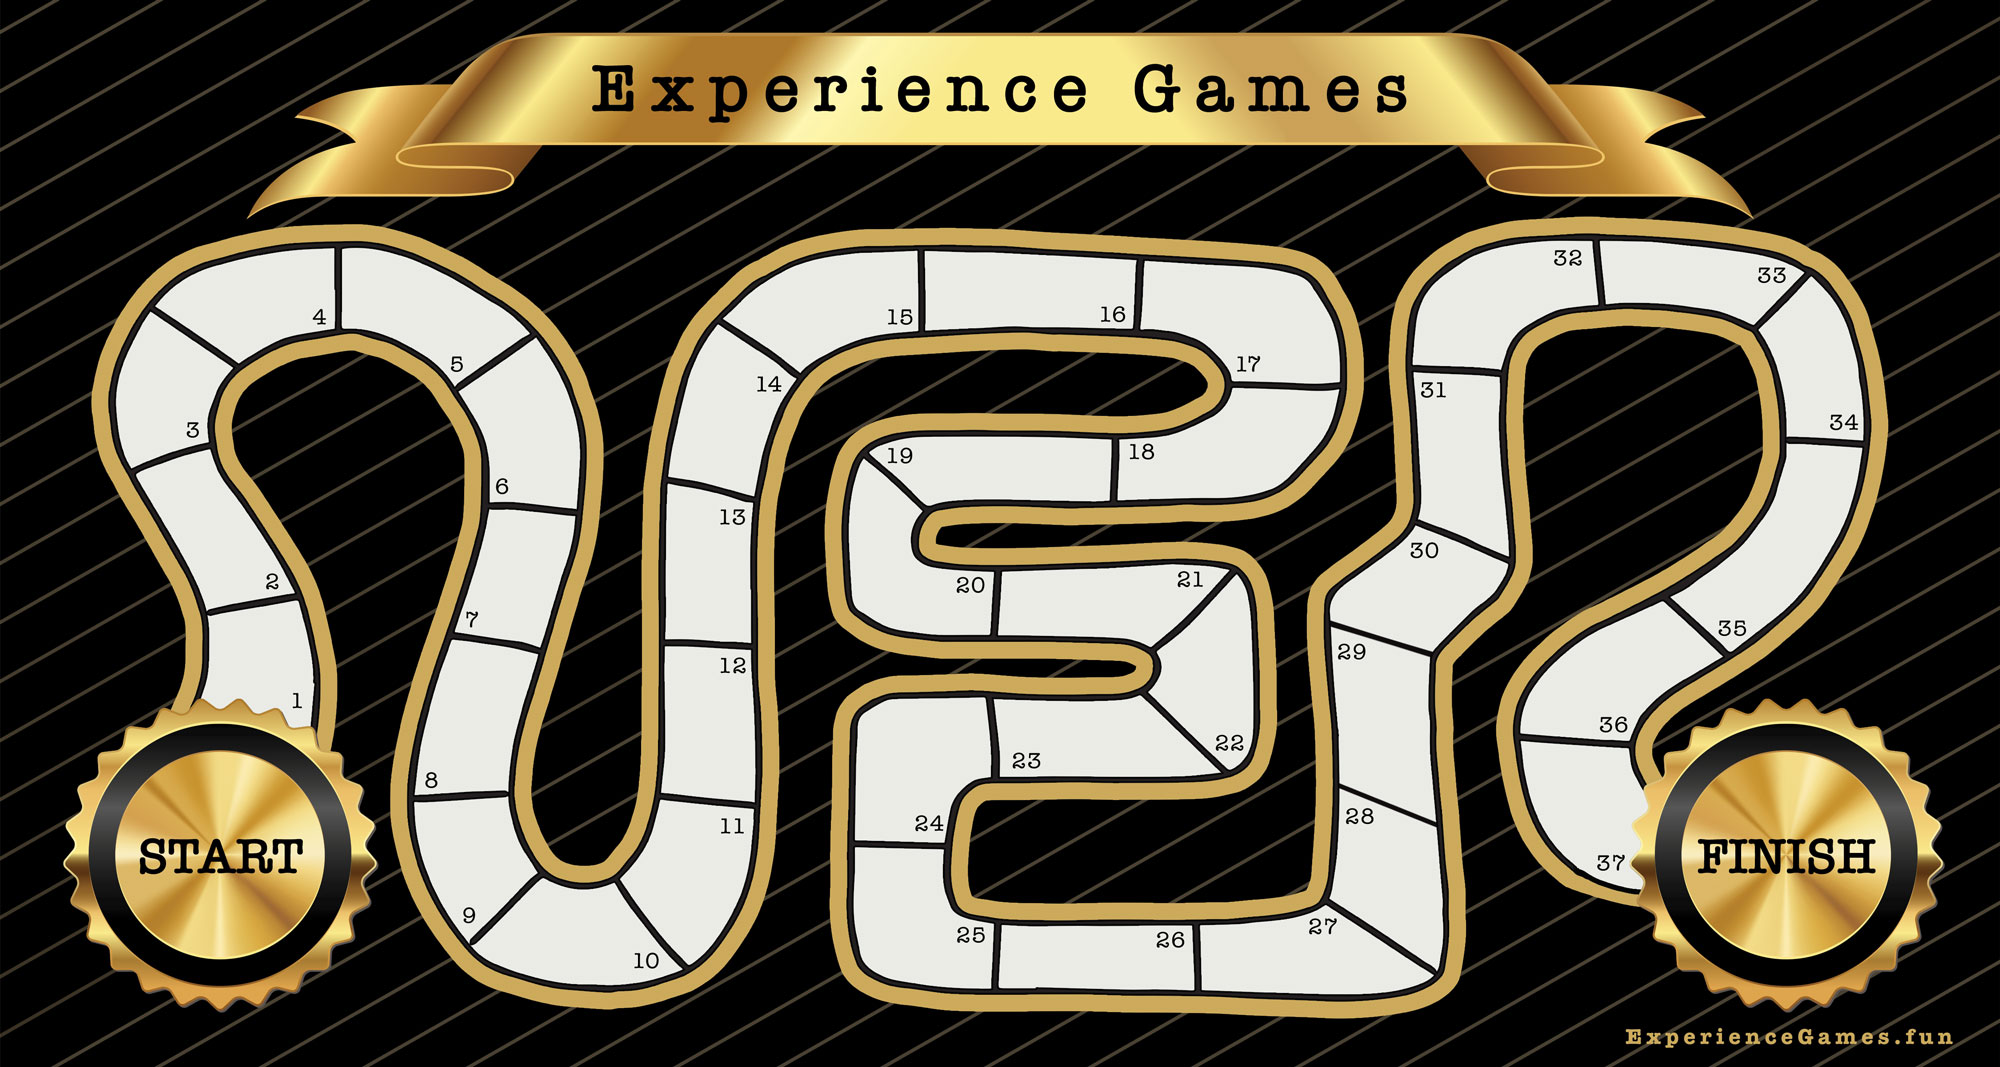 Experience Games